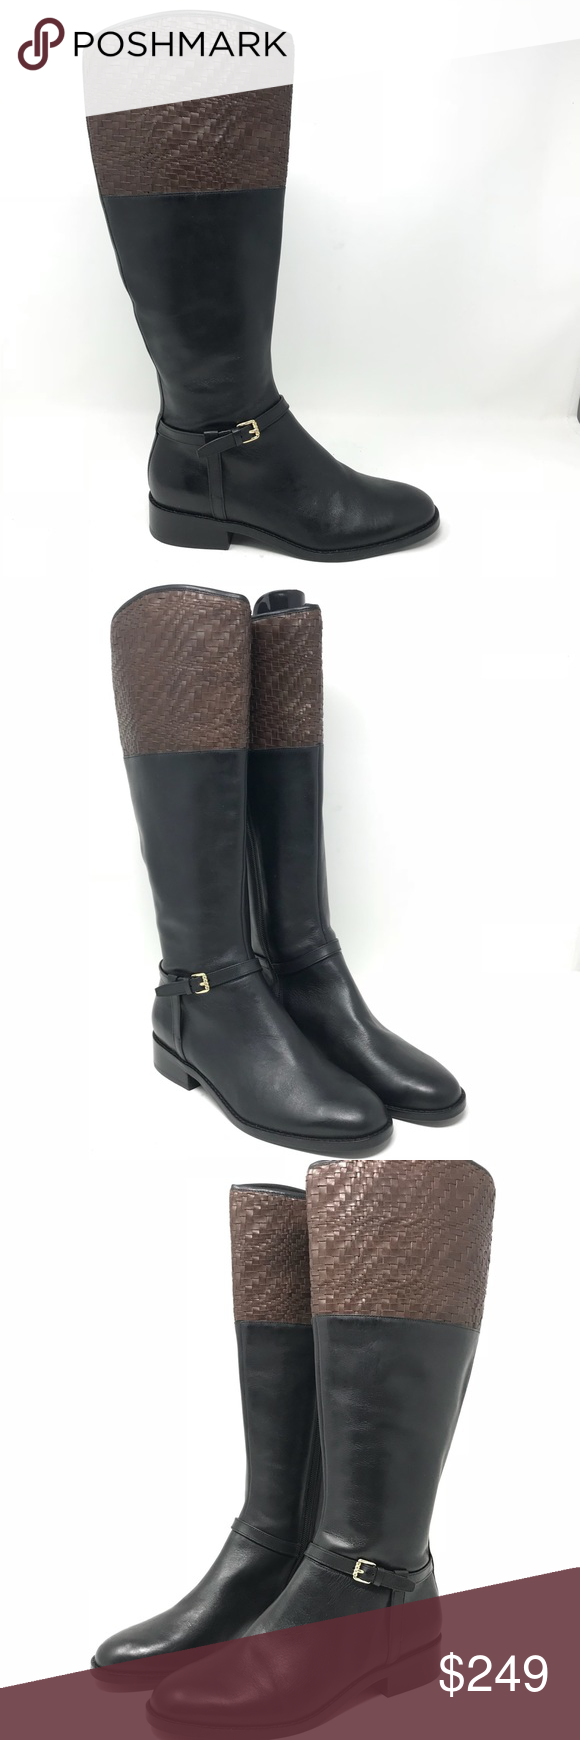 1826d7d3f6 Cole Haan Genevieve Woven Cuff Riding Boots Sz 7 Cole Haan Grand OS  Genevieve Sz 7